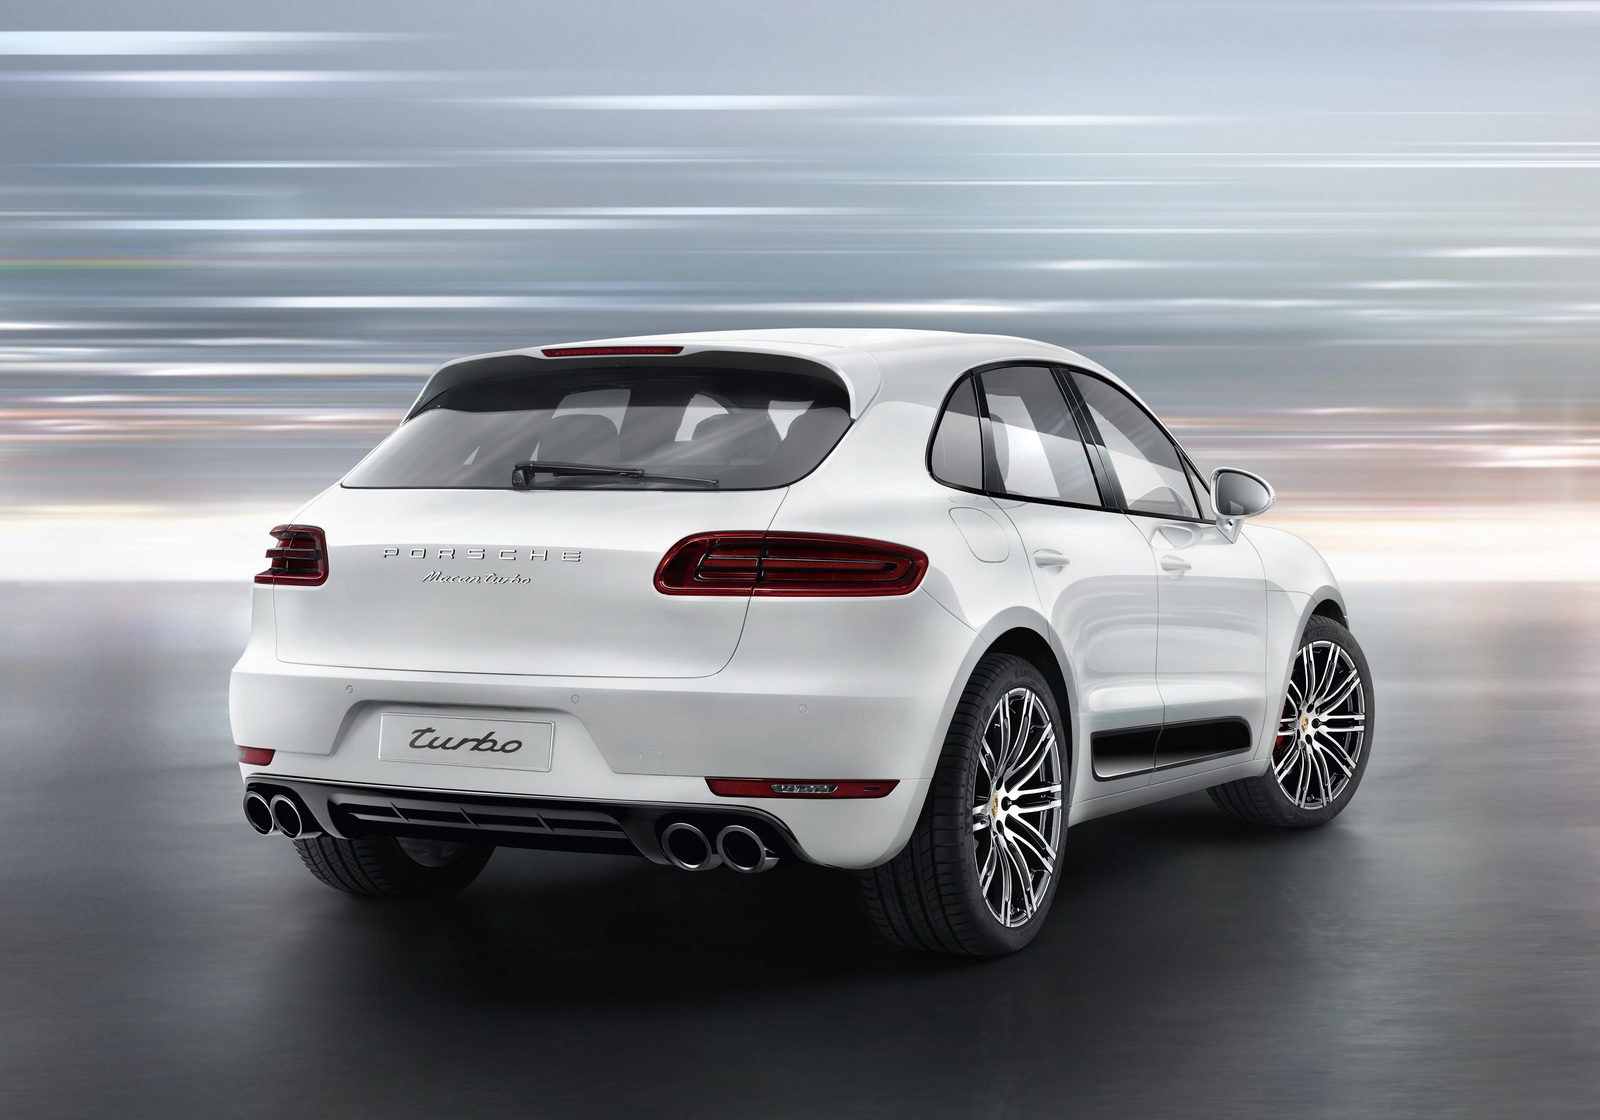 porsche upgrades macan range releases new packages for turbo models. Black Bedroom Furniture Sets. Home Design Ideas